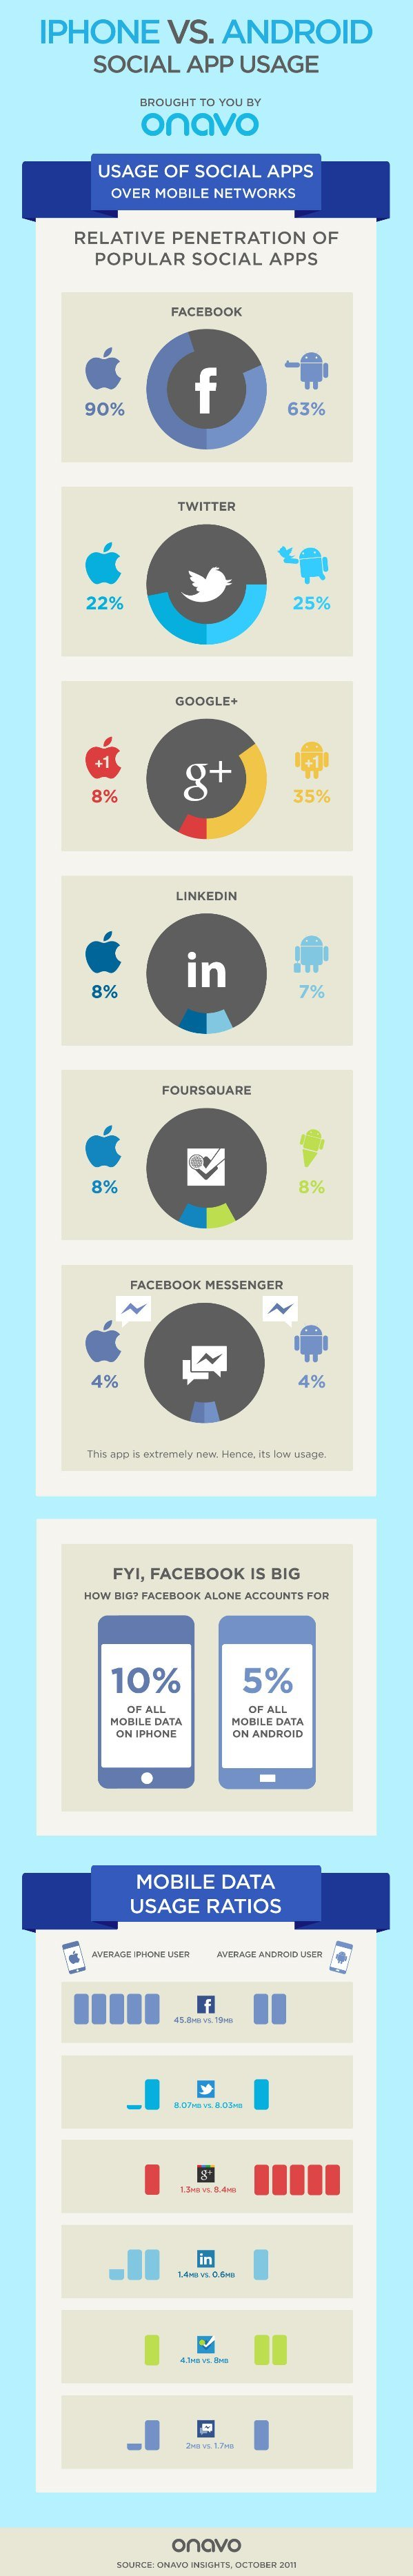 Usage of Social Apps, iPhone vs. Android | Onavo